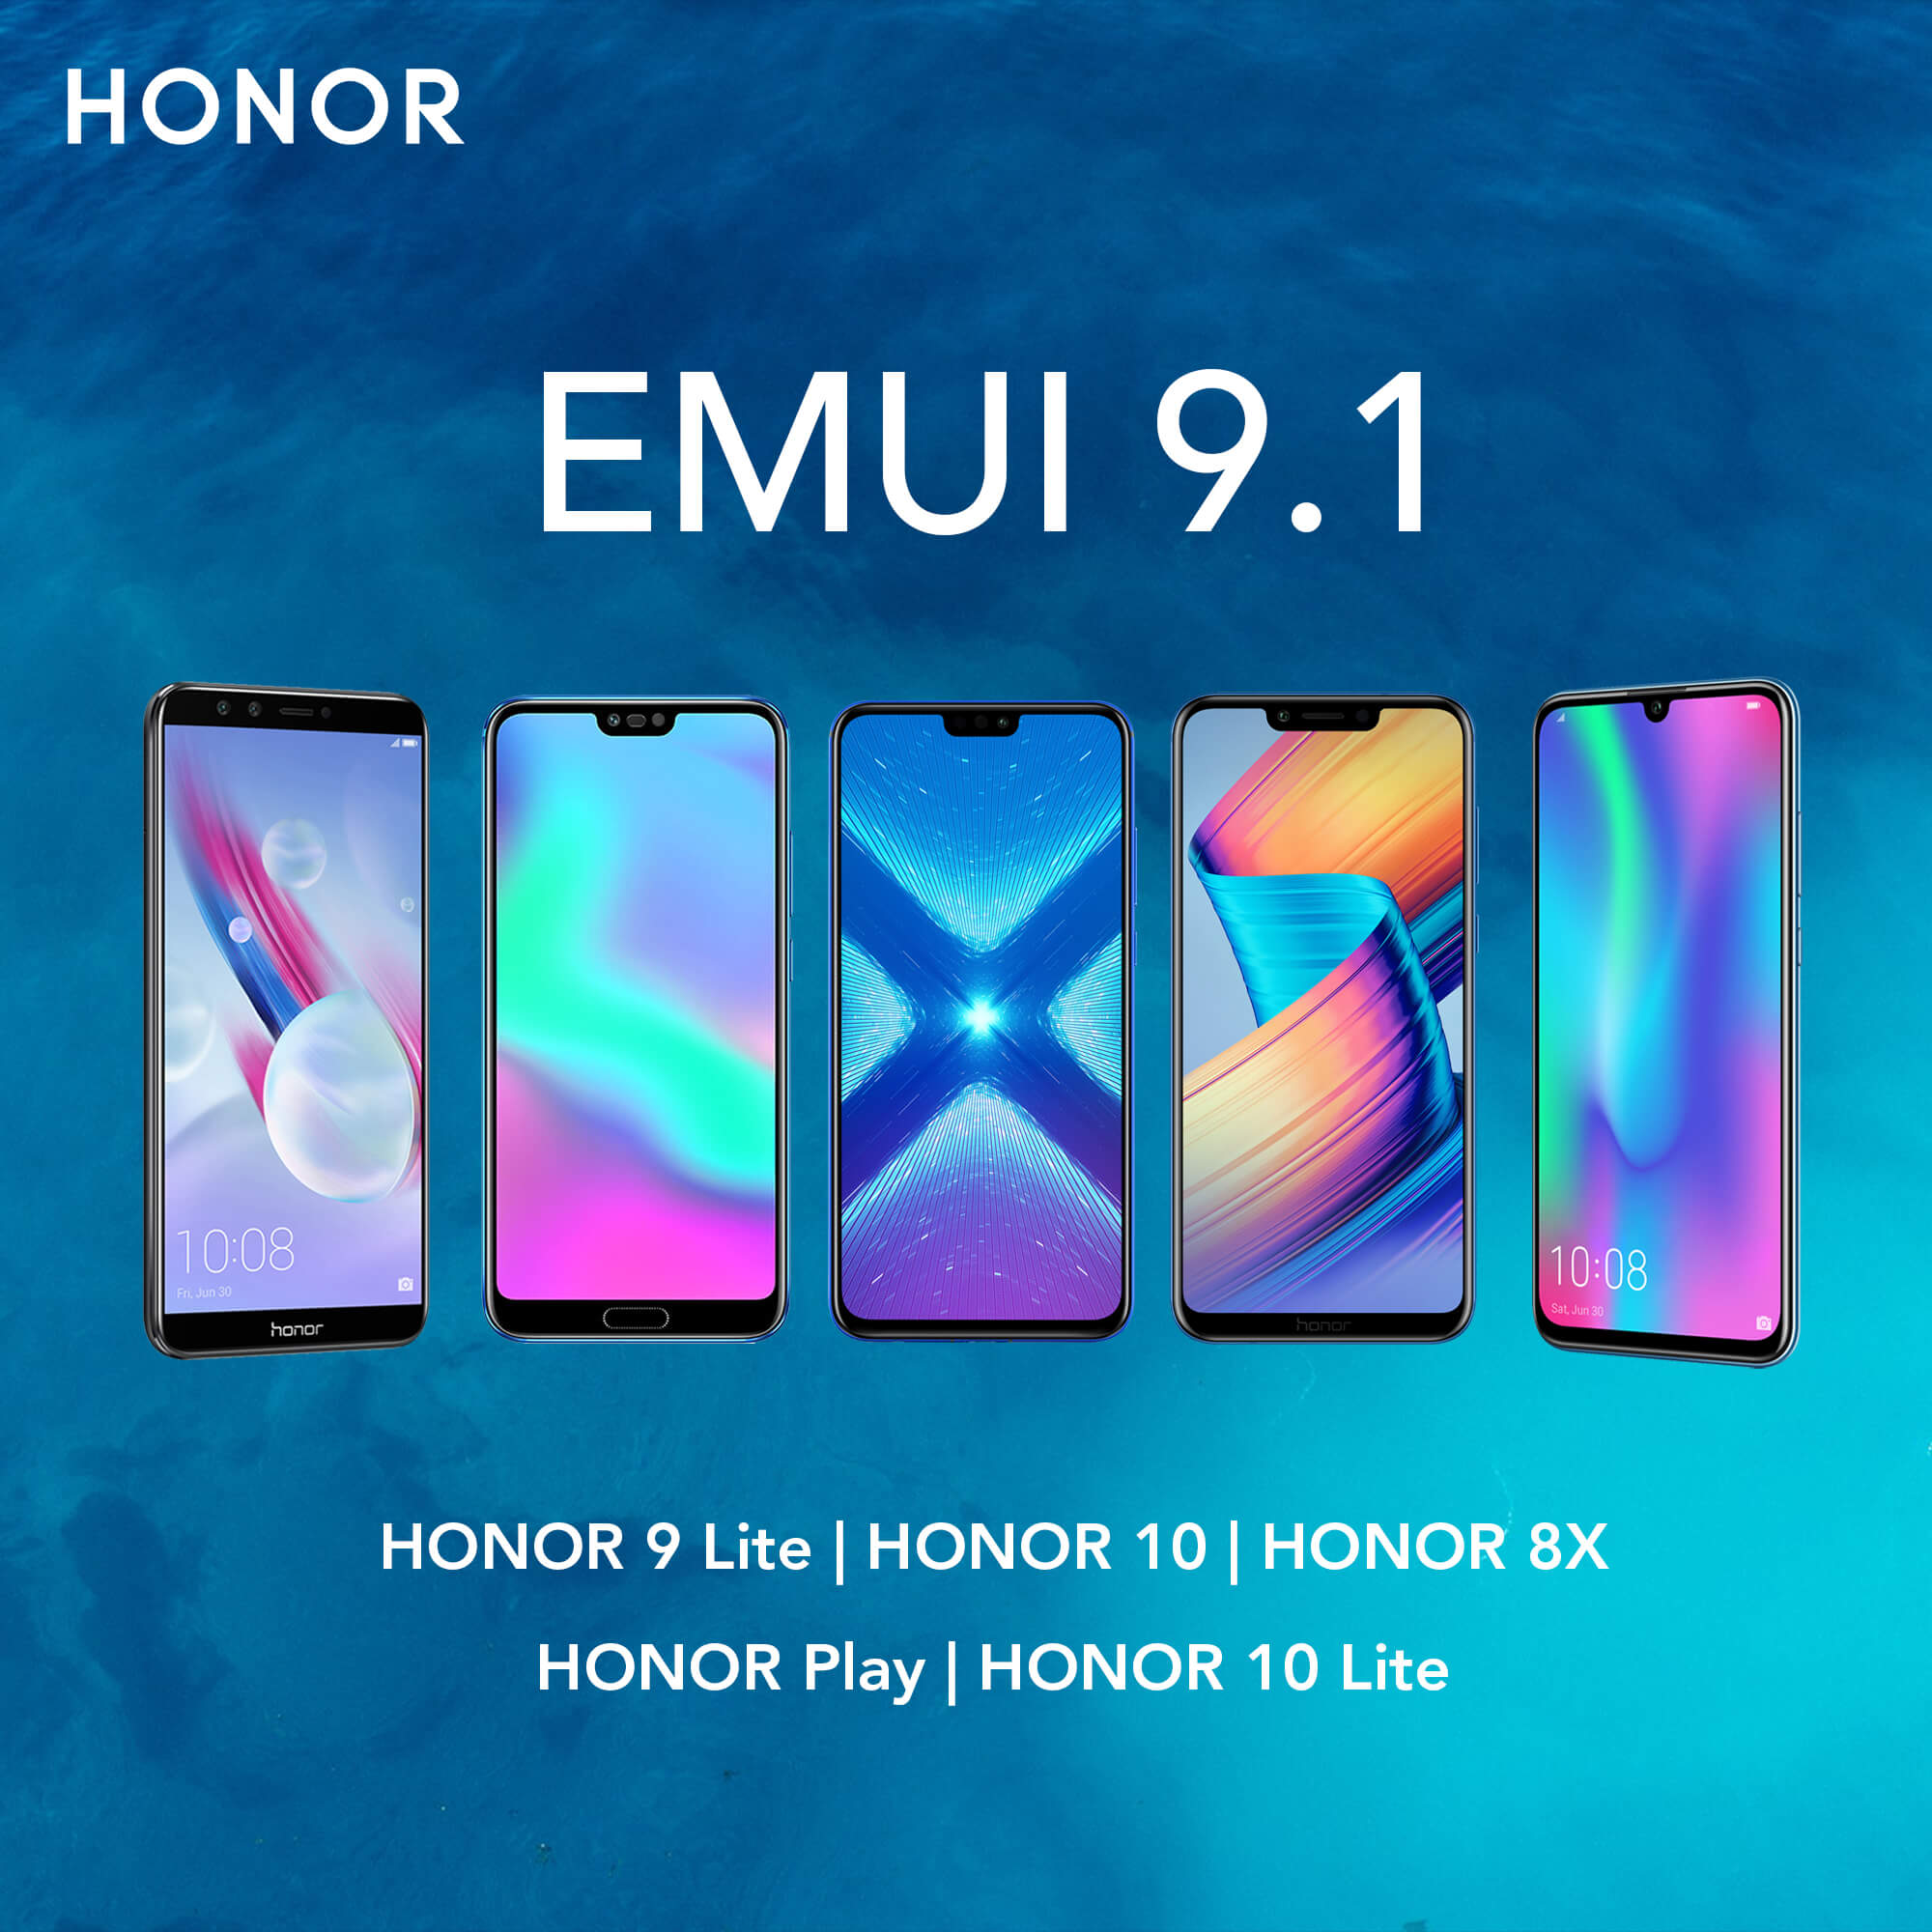 EMUI 9.1 HONOR, EMUI 9.1 Coming to Select HONOR Devices this August!, Gadget Pilipinas, Gadget Pilipinas